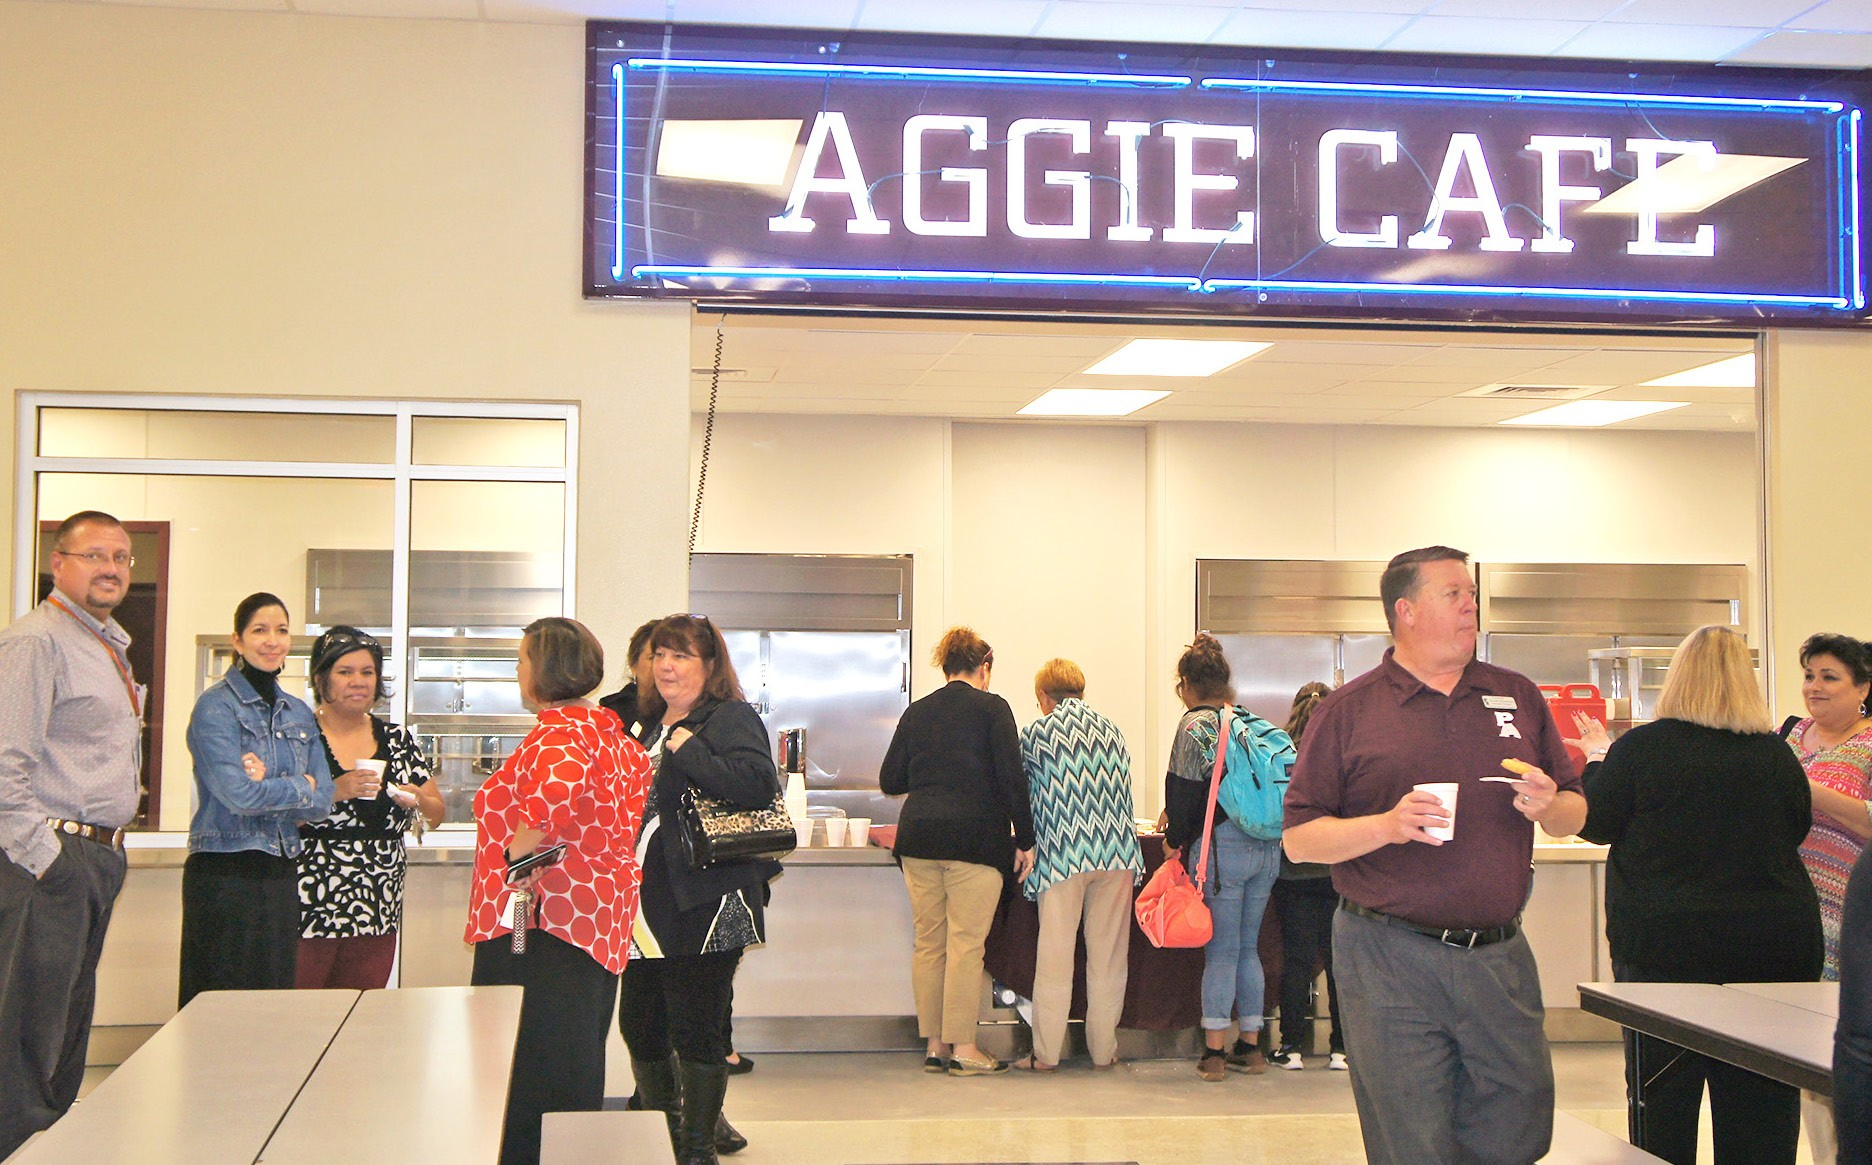 Poteet ISD Administration, staff, students and their families had the opportunity to see the new cafeteria and gym at Poteet Junior High, on March 9.